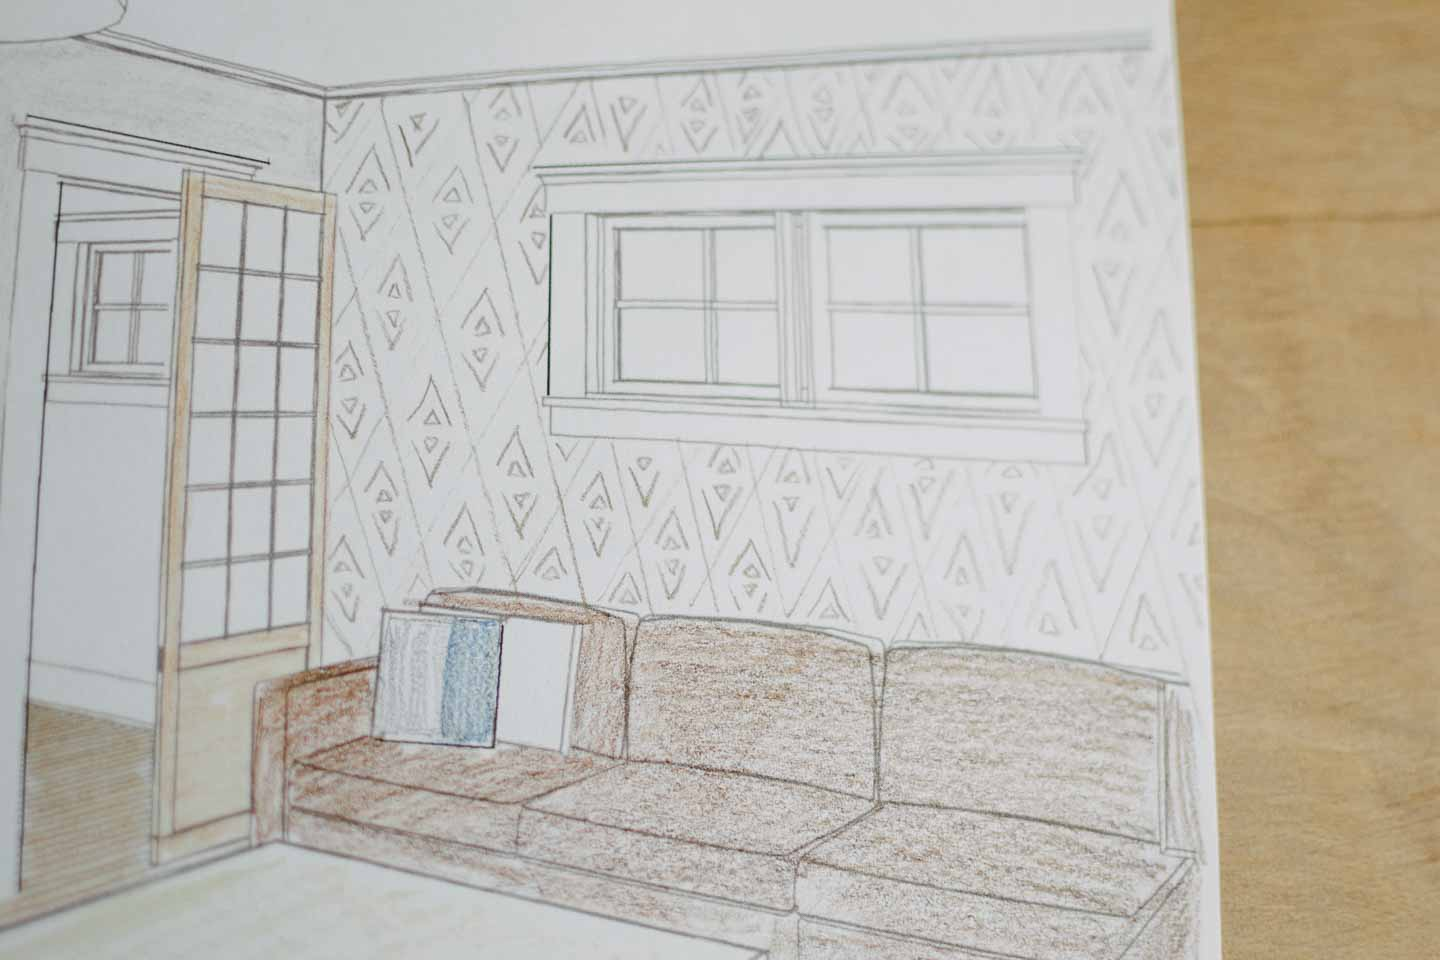 coloring page fixes wall design dilemma